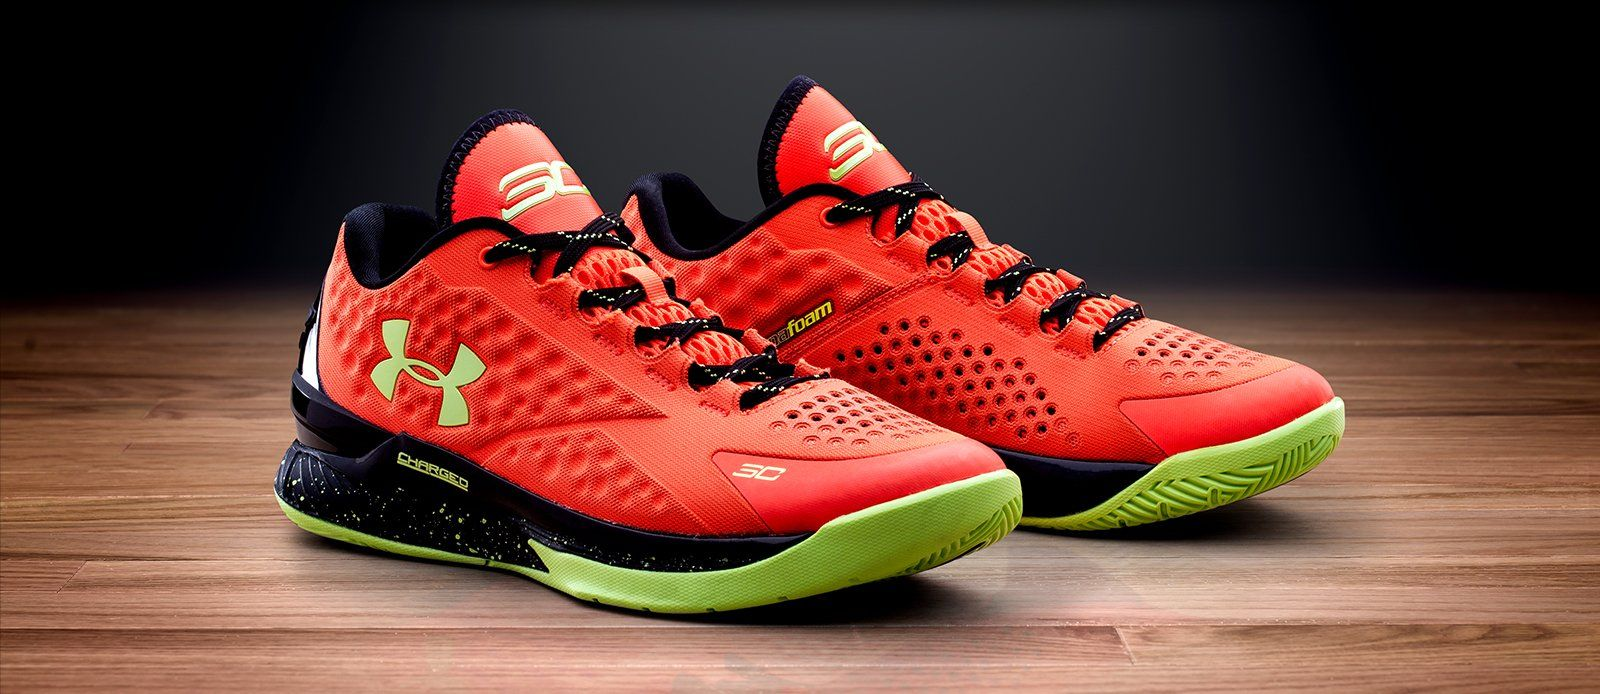 Under Armour | Stephen Curry One Basketball Shoes | US | KICKS | Pinterest  | Armours and Sneaker heads